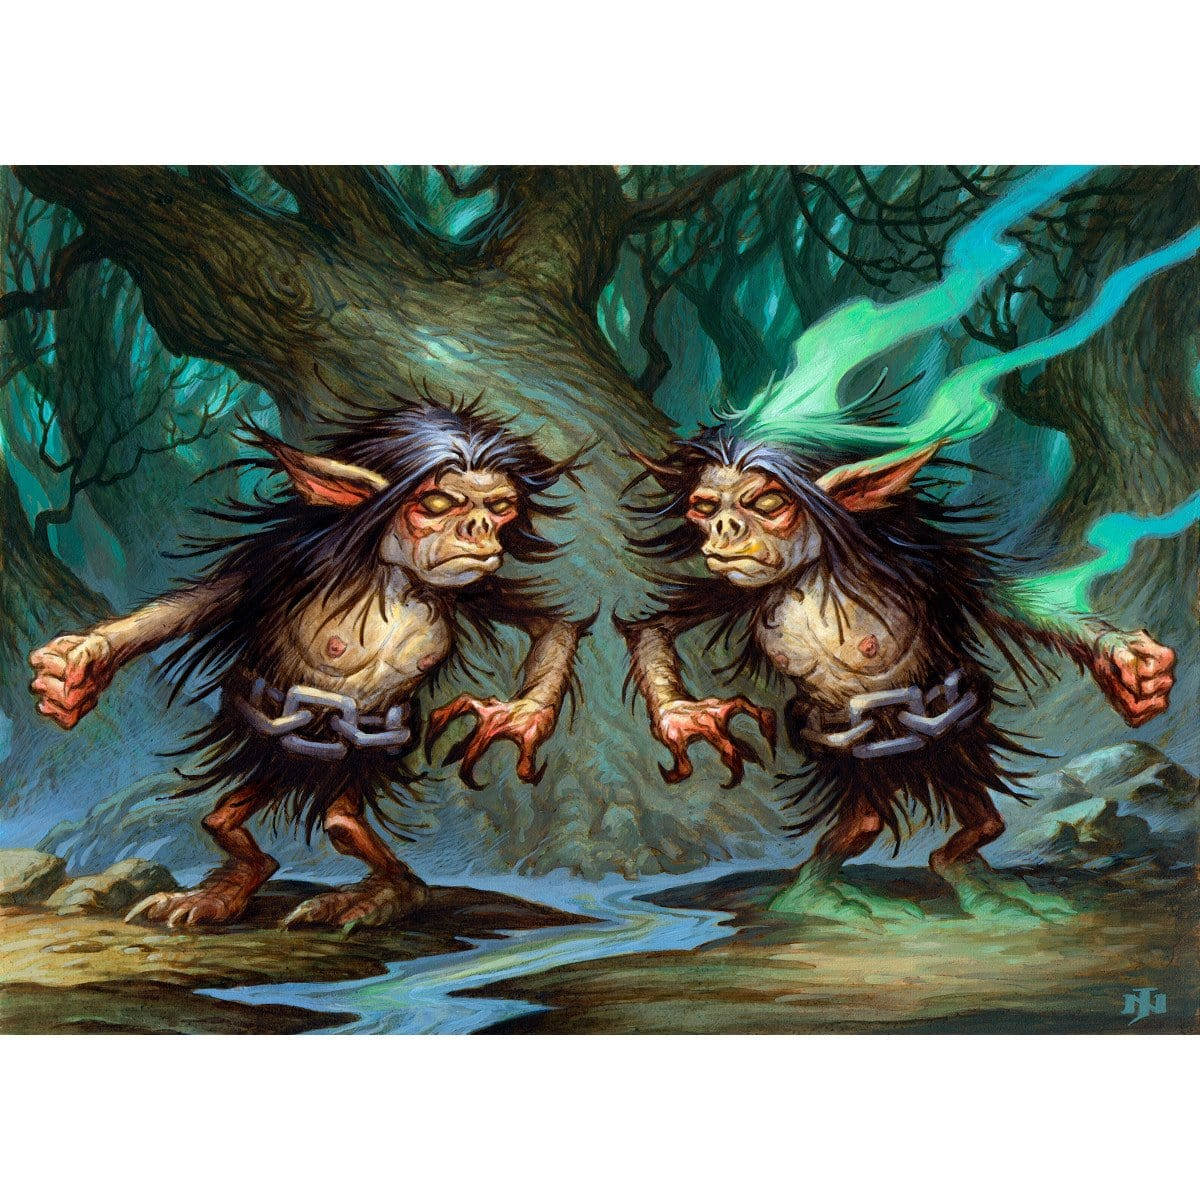 Spitting Image Print - Print - Original Magic Art - Accessories for Magic the Gathering and other card games